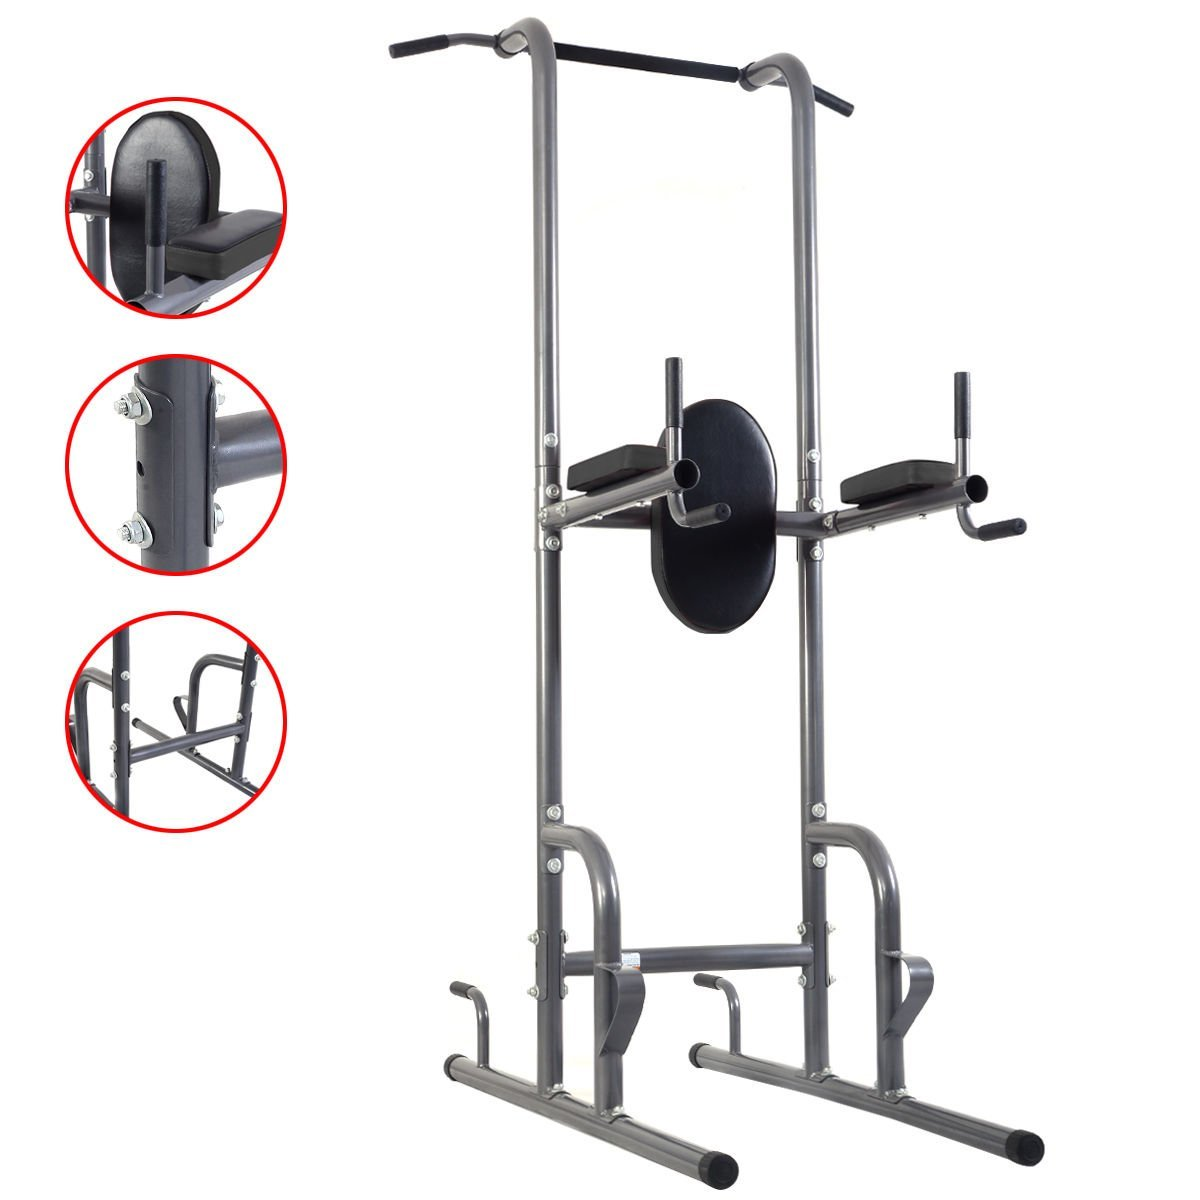 f8846694e7 Get Quotations · New Dip Station Chin Up Tower Rack Pull Up Weight Stand Bar  Raise Workout Home Gym